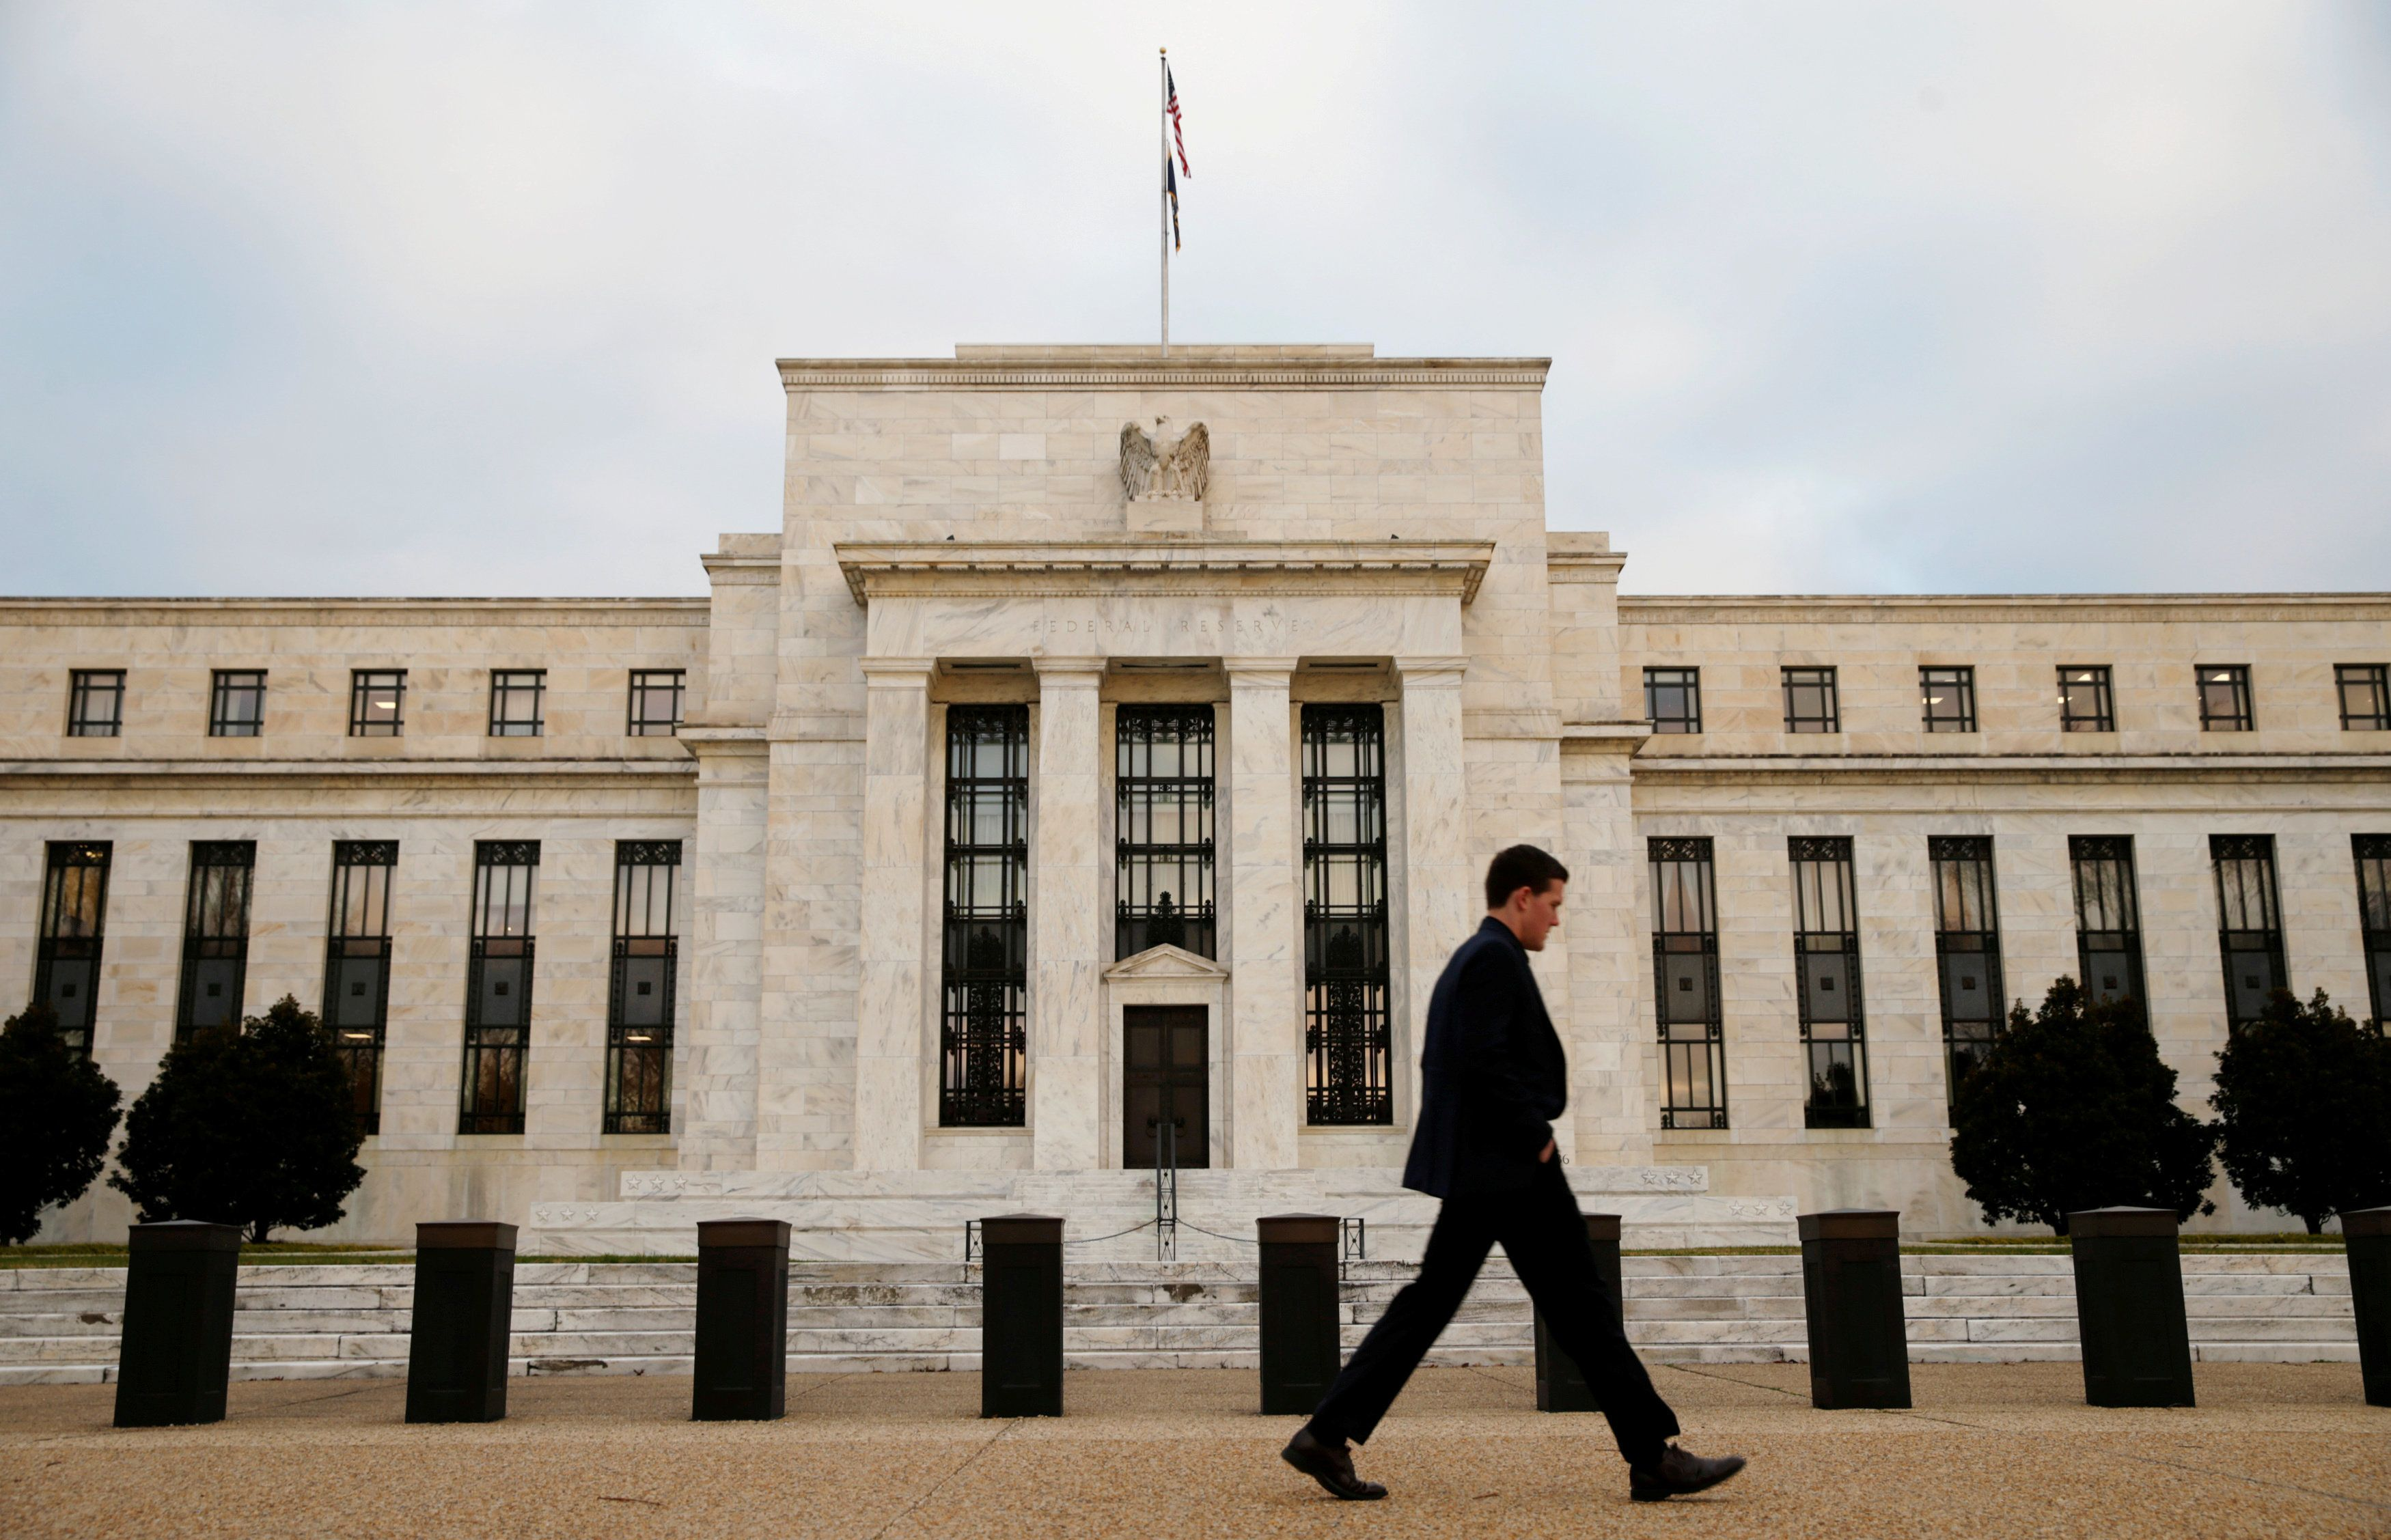 """A man walks past the Federal Reserve Bank in Washington, D.C., U.S. December 16, 2015. The Federal Reserve recorded more than 50 cyber breaches between 2011 and 2015, with several incidents described internally as """"espionage"""", according to records obtained by Reuters.  REUTERS/Kevin Lamarque/File Photo"""